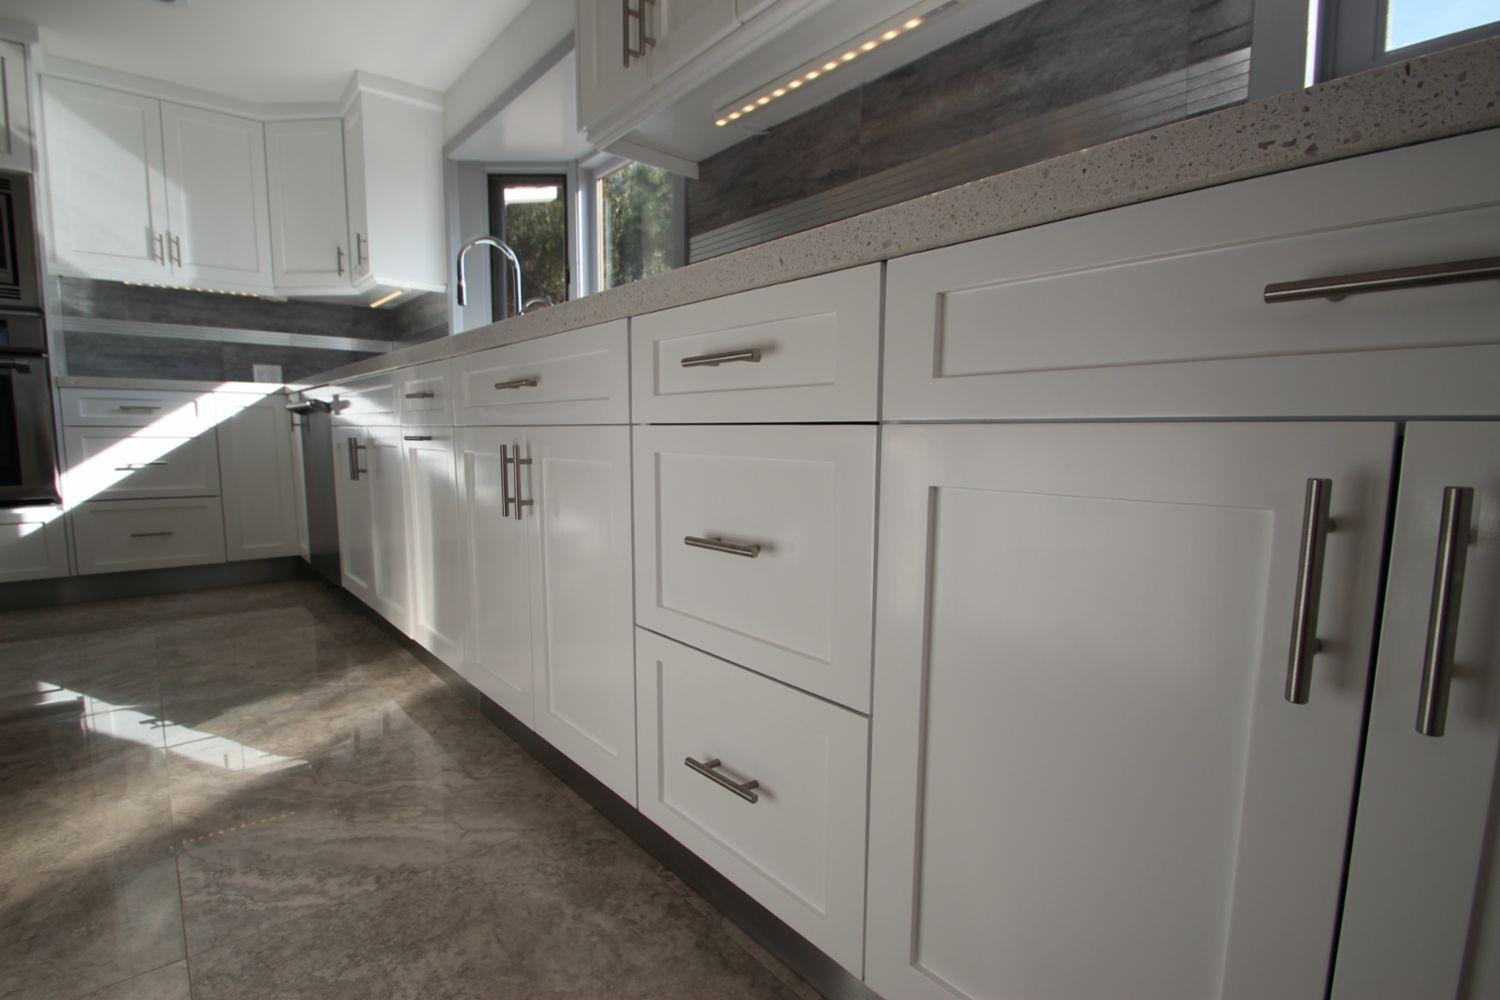 Kitchen remodeling remodel modern bathroom pacoima - Fixr Experience Score 28